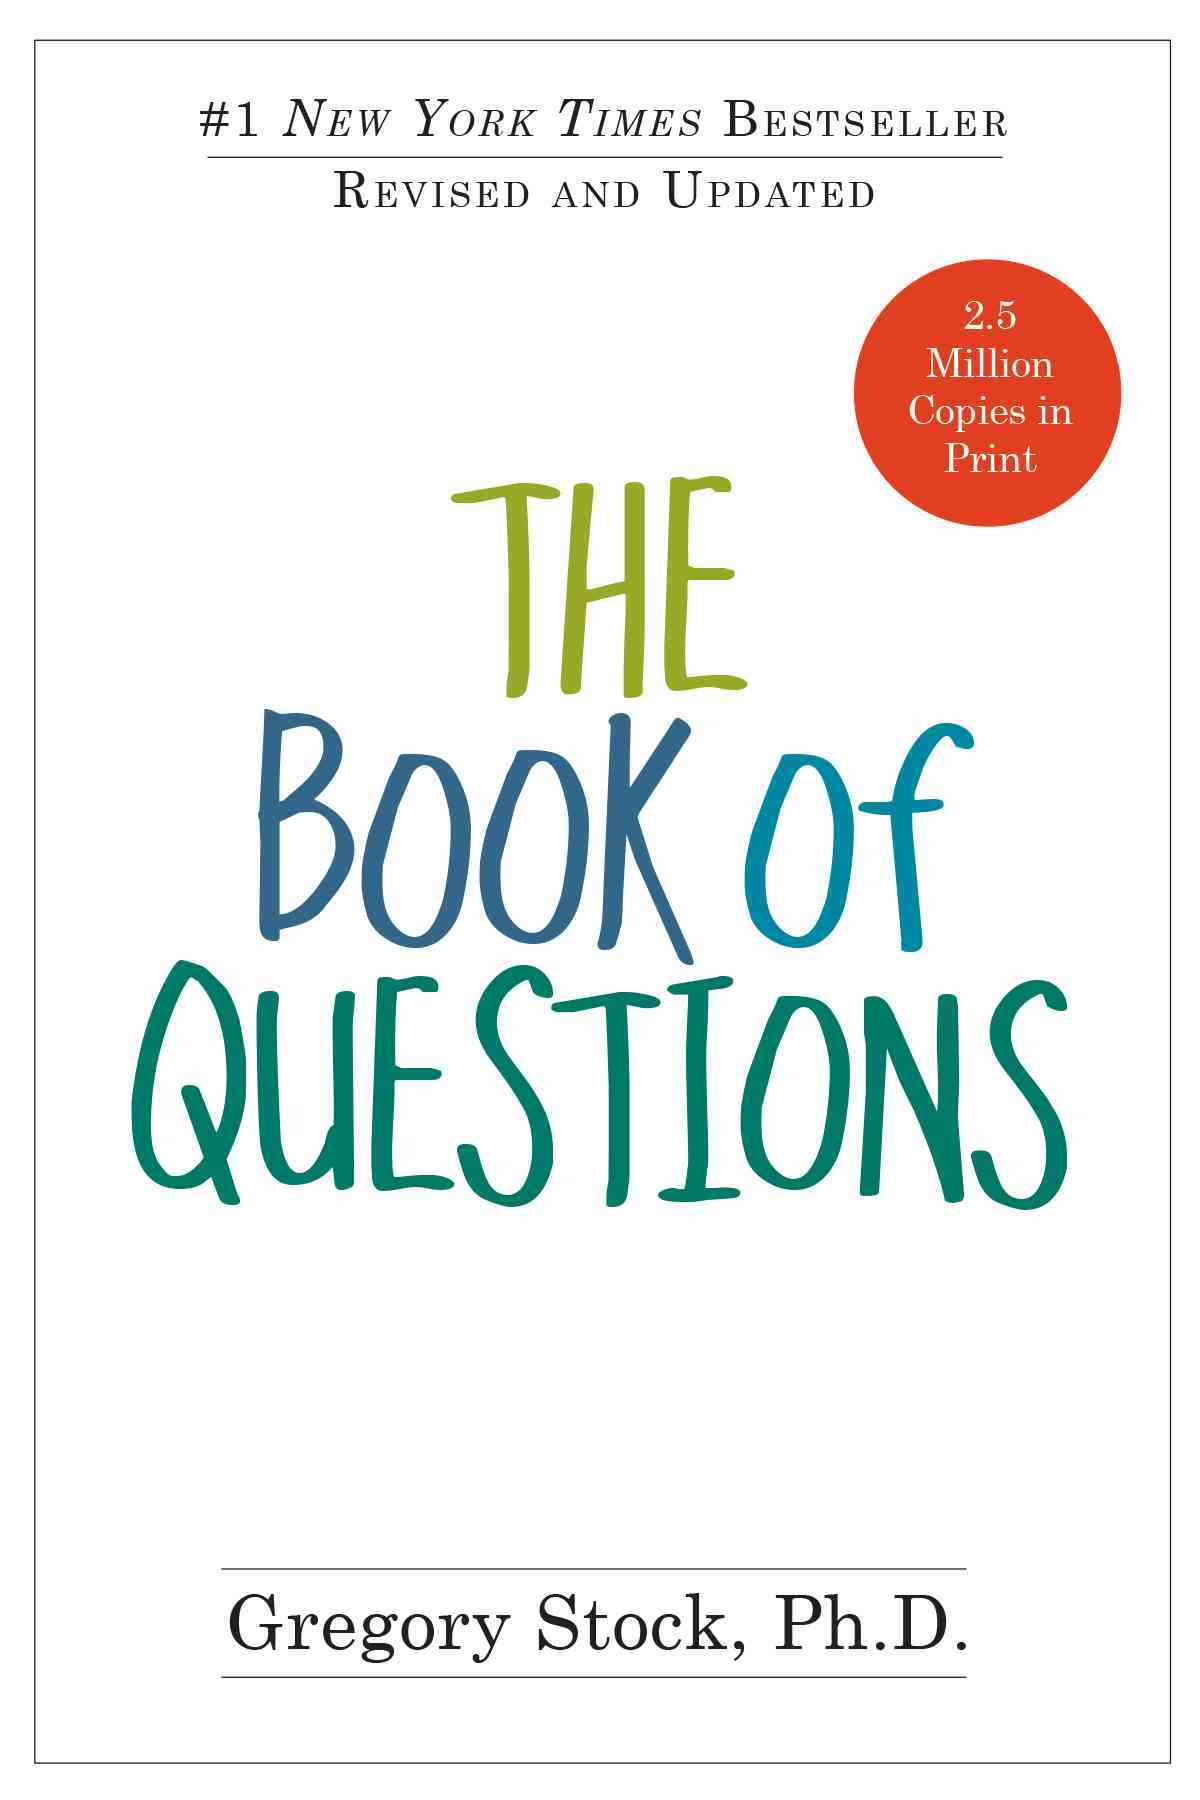 The Book of Questions (Paperback)